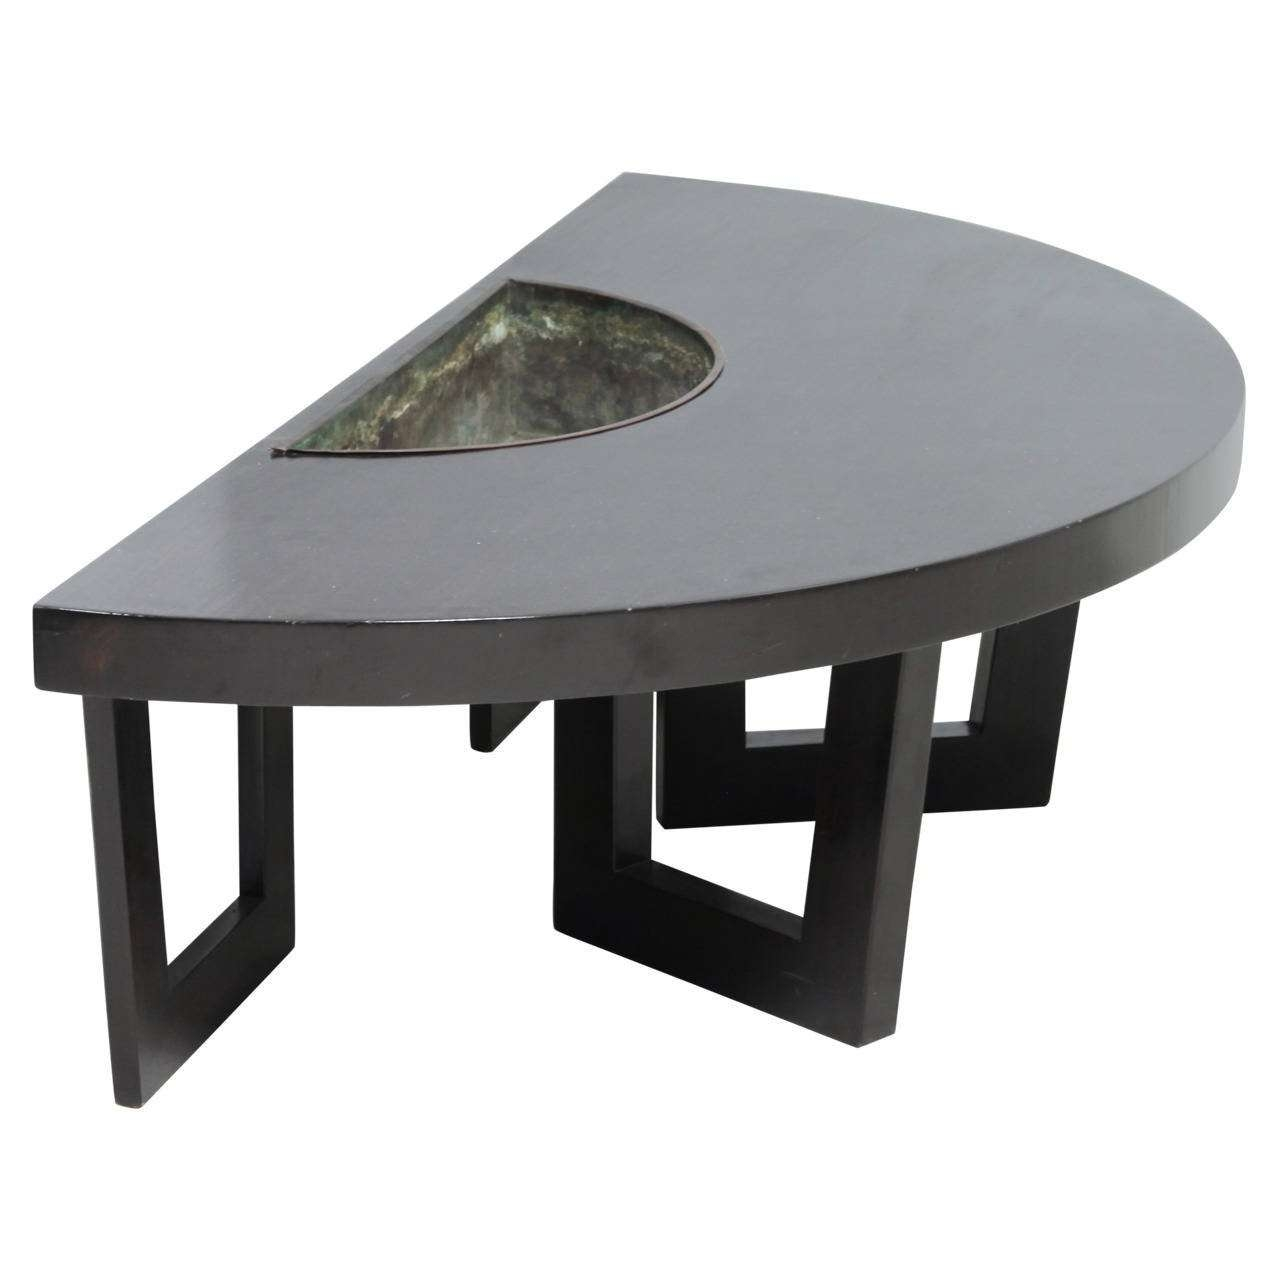 Harvey Probber Semi Circle Coffee Table With Inserted Copper Inside Latest Circle Coffee Tables (View 11 of 20)